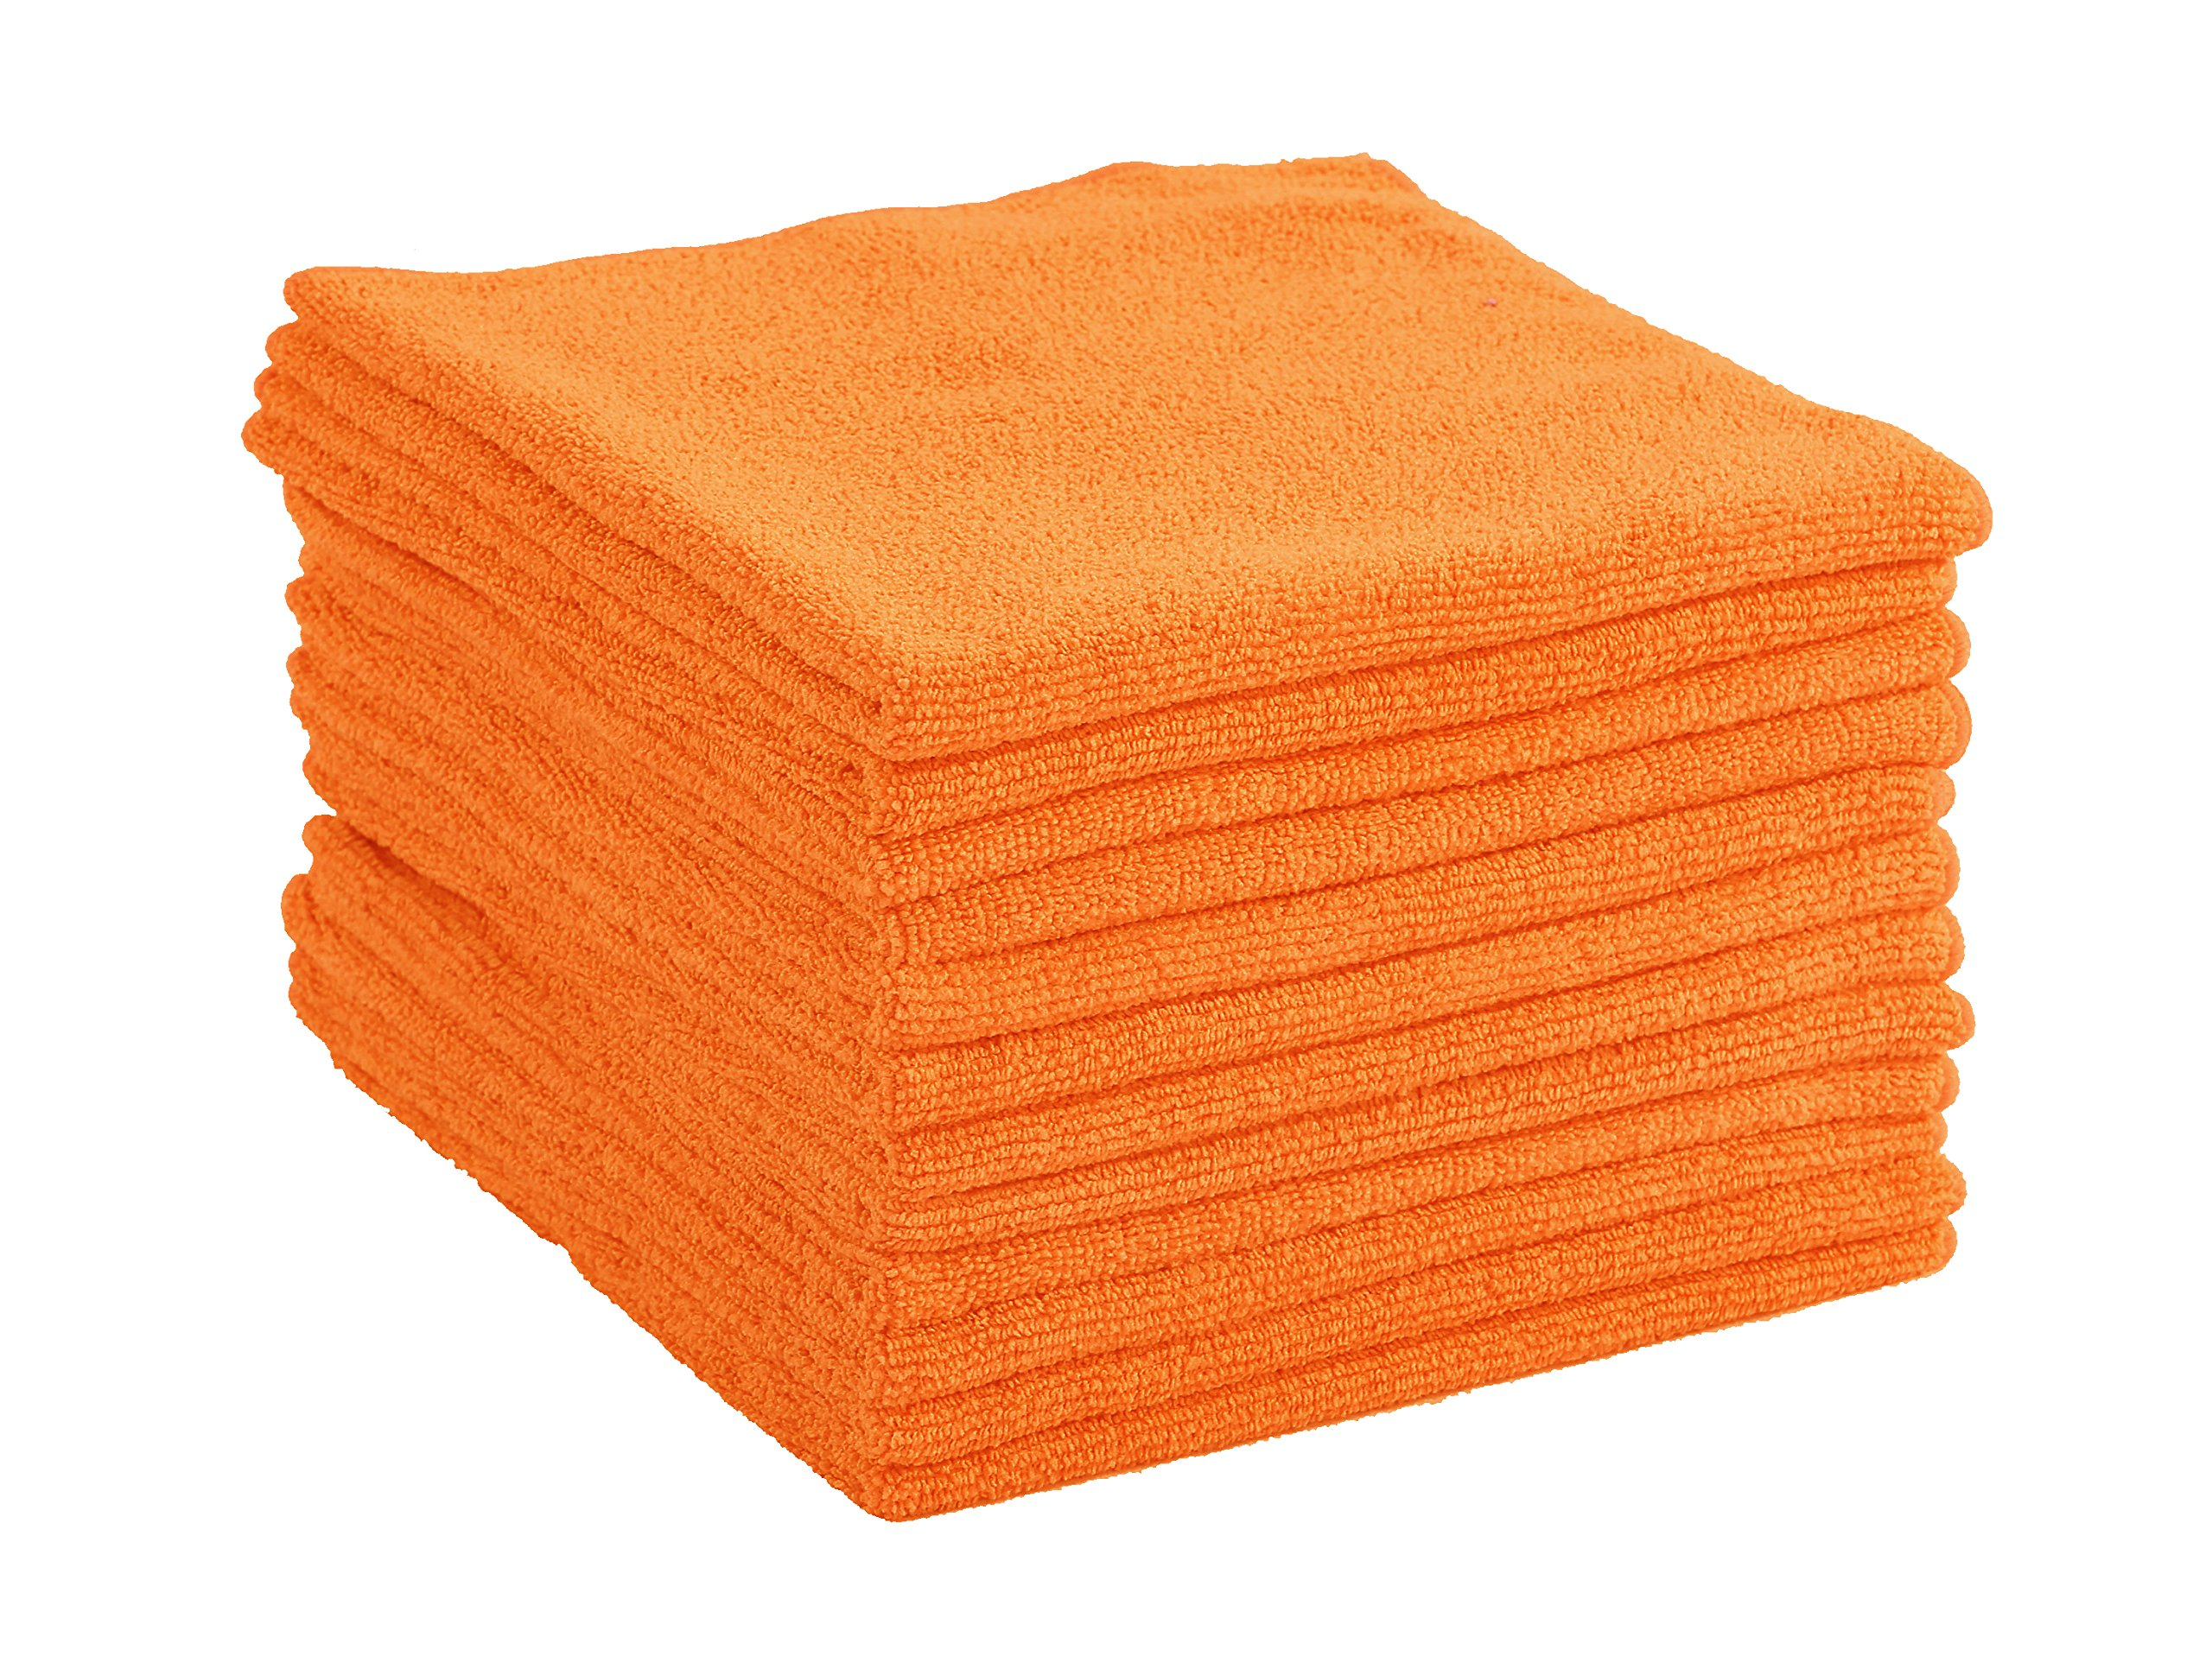 Dri Professional Extra-Thick Microfiber Cleaning Cloth - 16 in x 16 in - 12 Pack (Orange) - Ultra-absorbent, quick drying, chemical-free cleaning